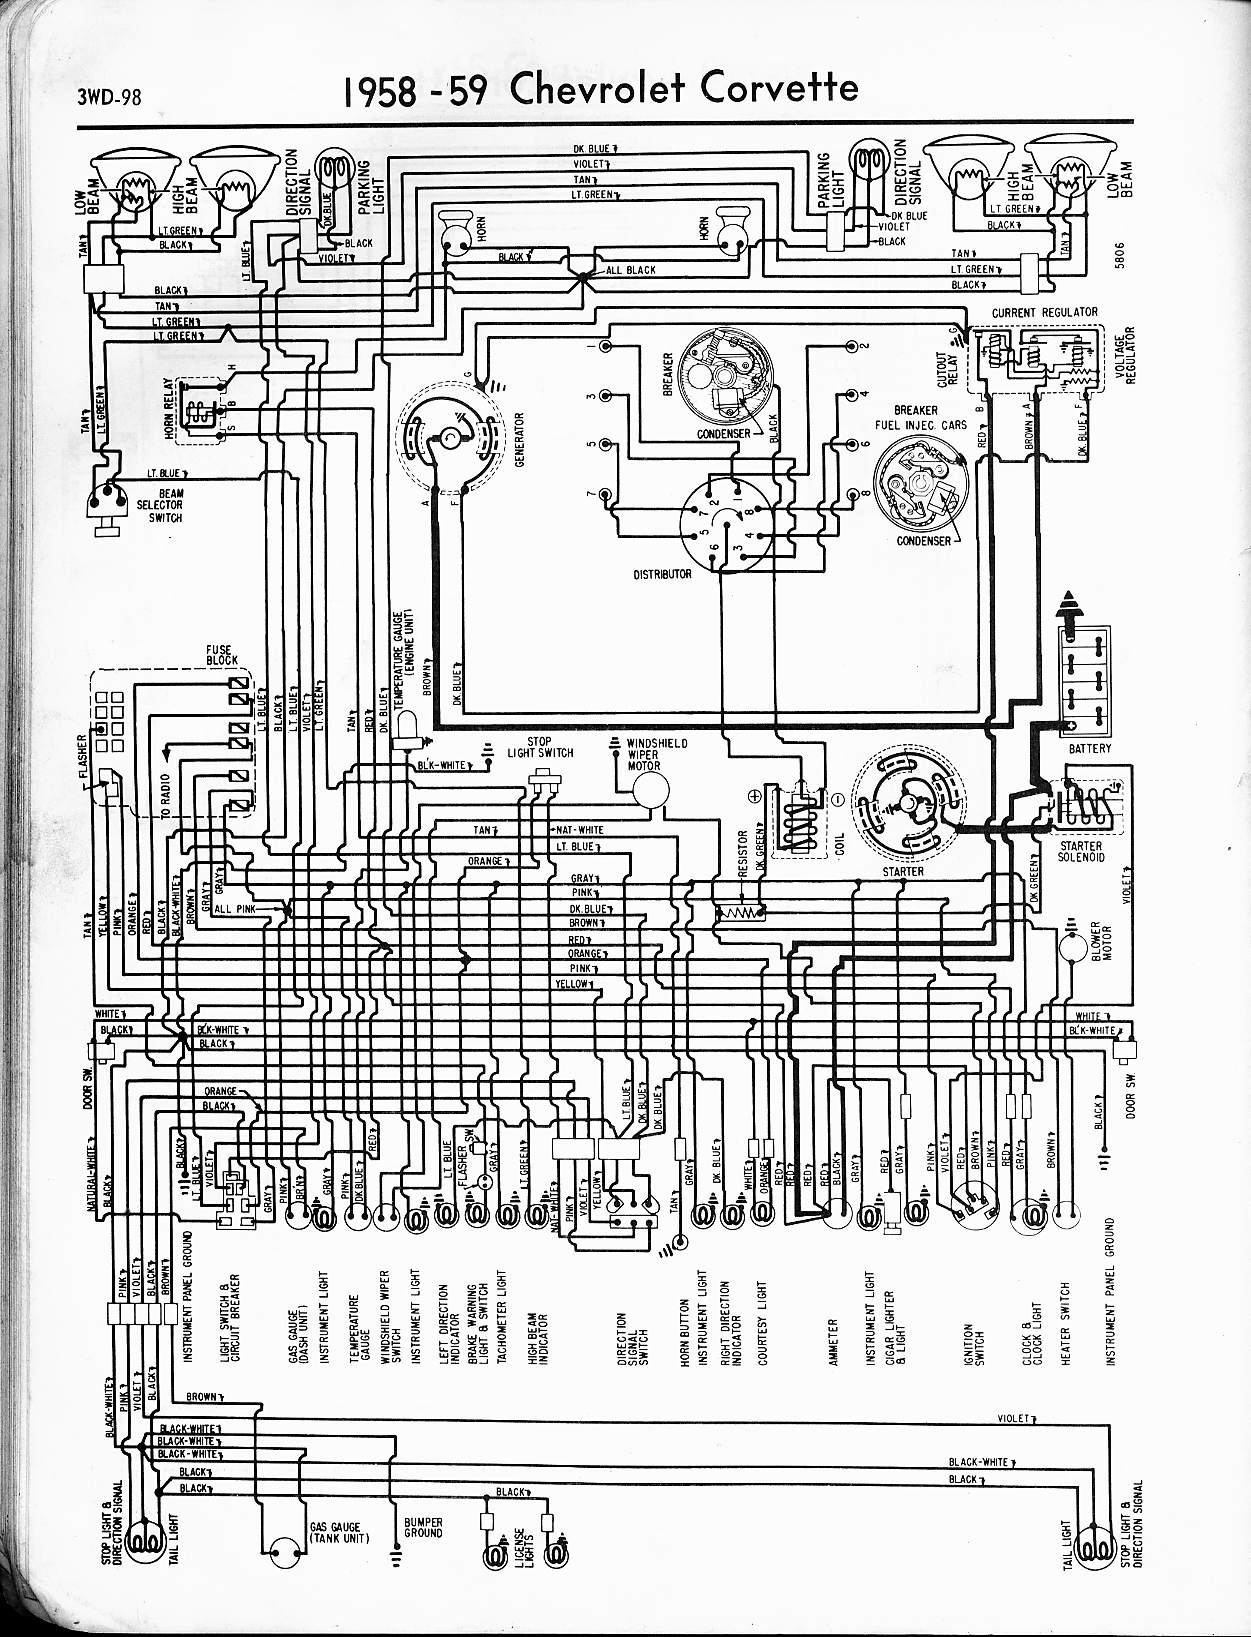 2005 Chevy Impala Wiring Diagram